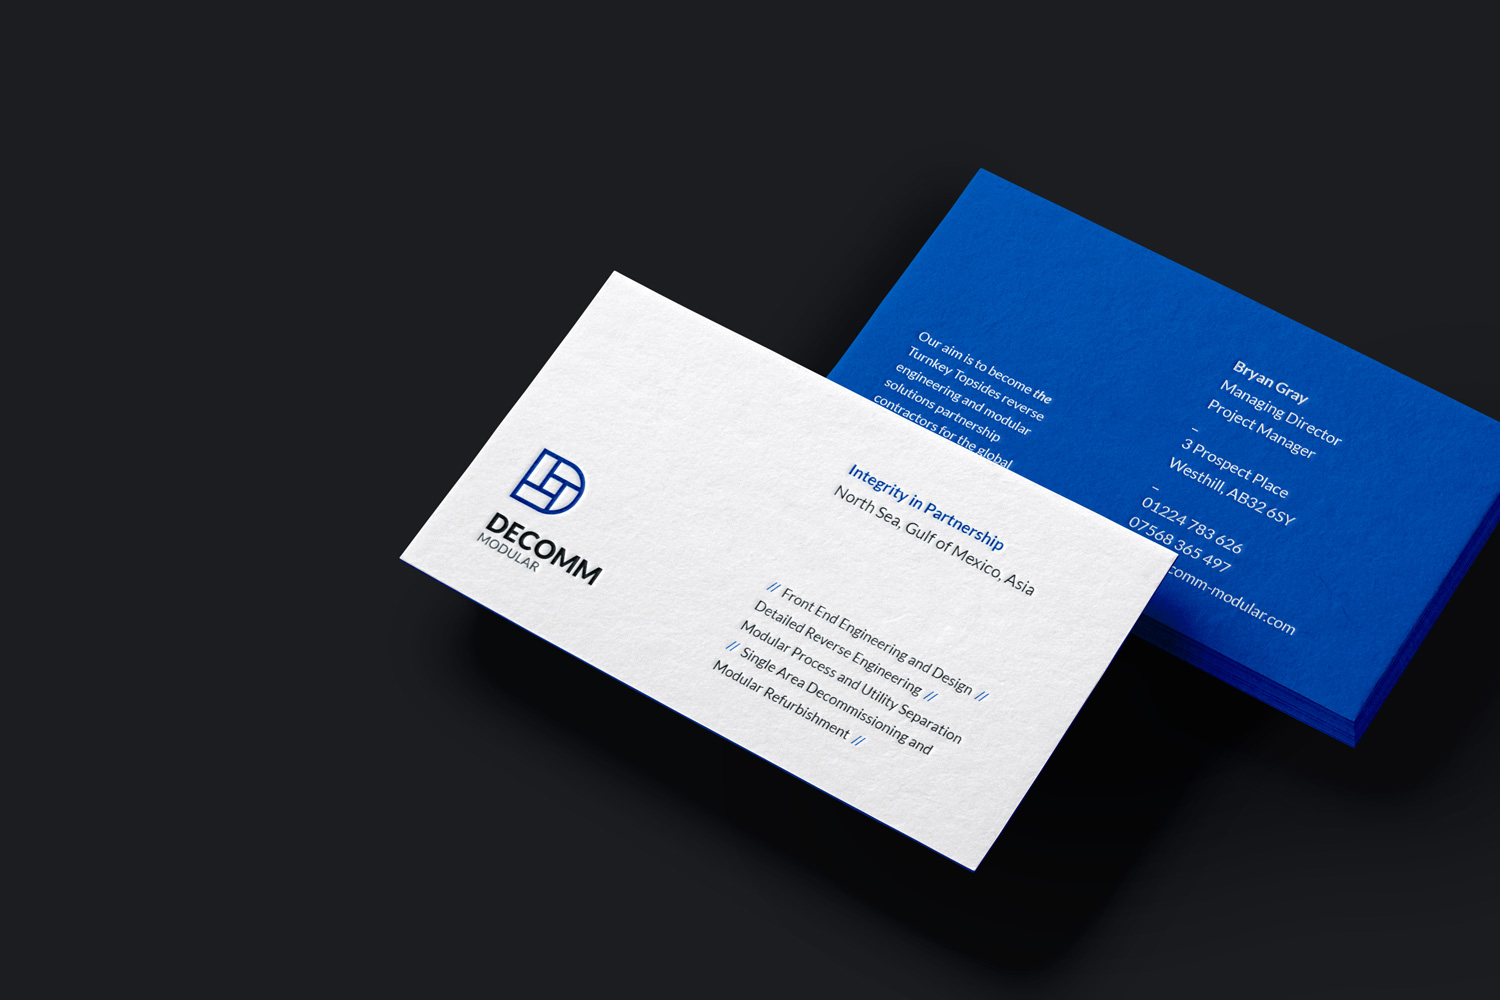 Decomm Modular Business cards